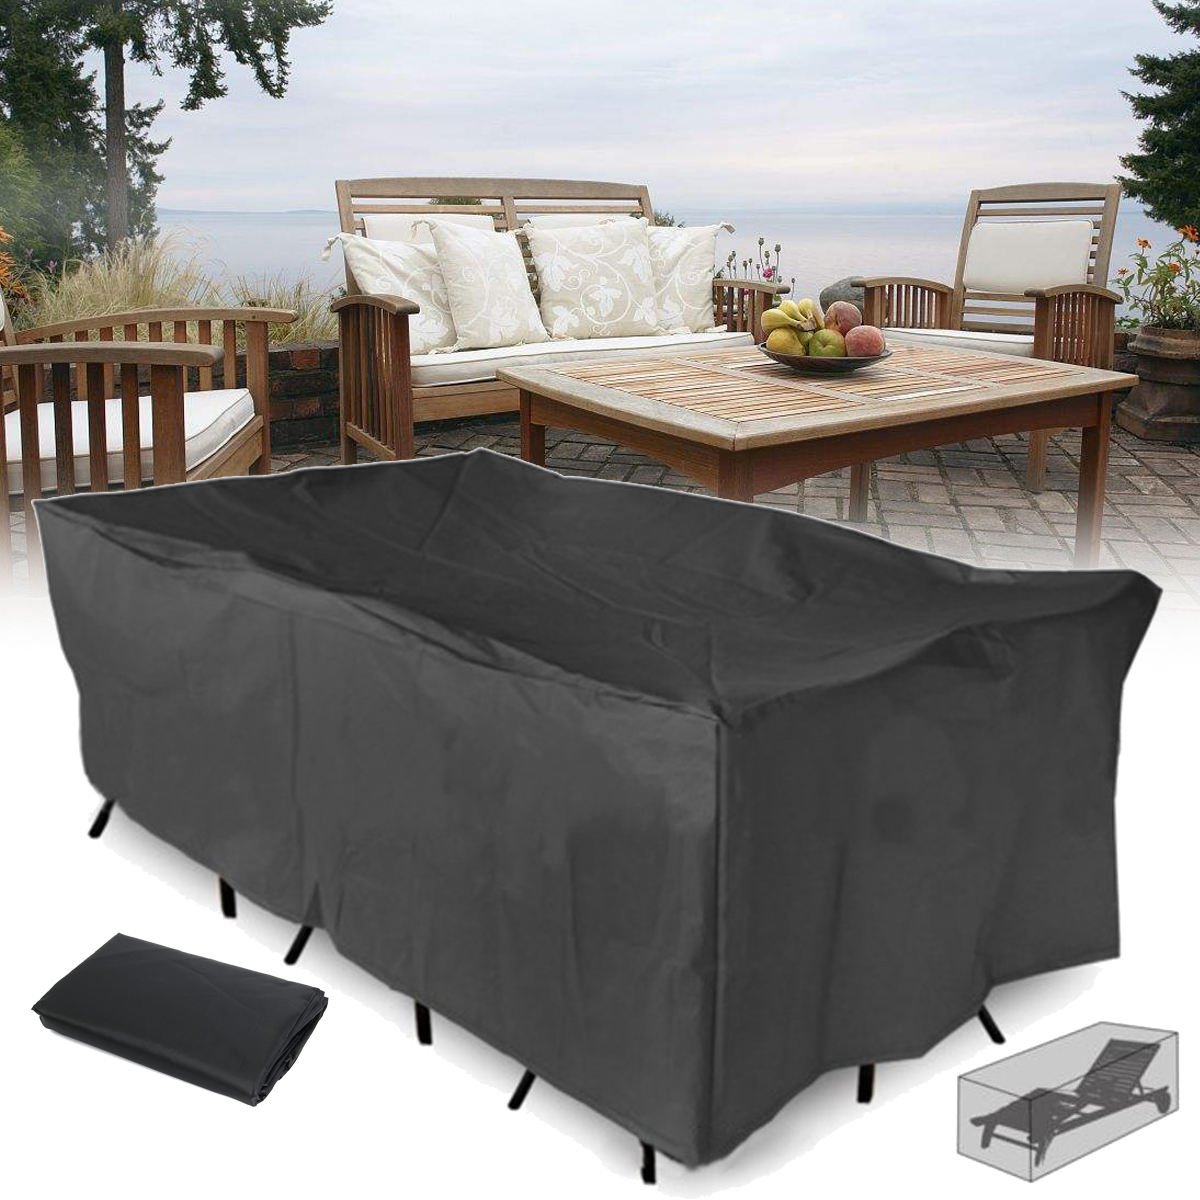 84 patio sofa cover t shaped covers other camping and outdoors 210x110x70cm outdoor garden